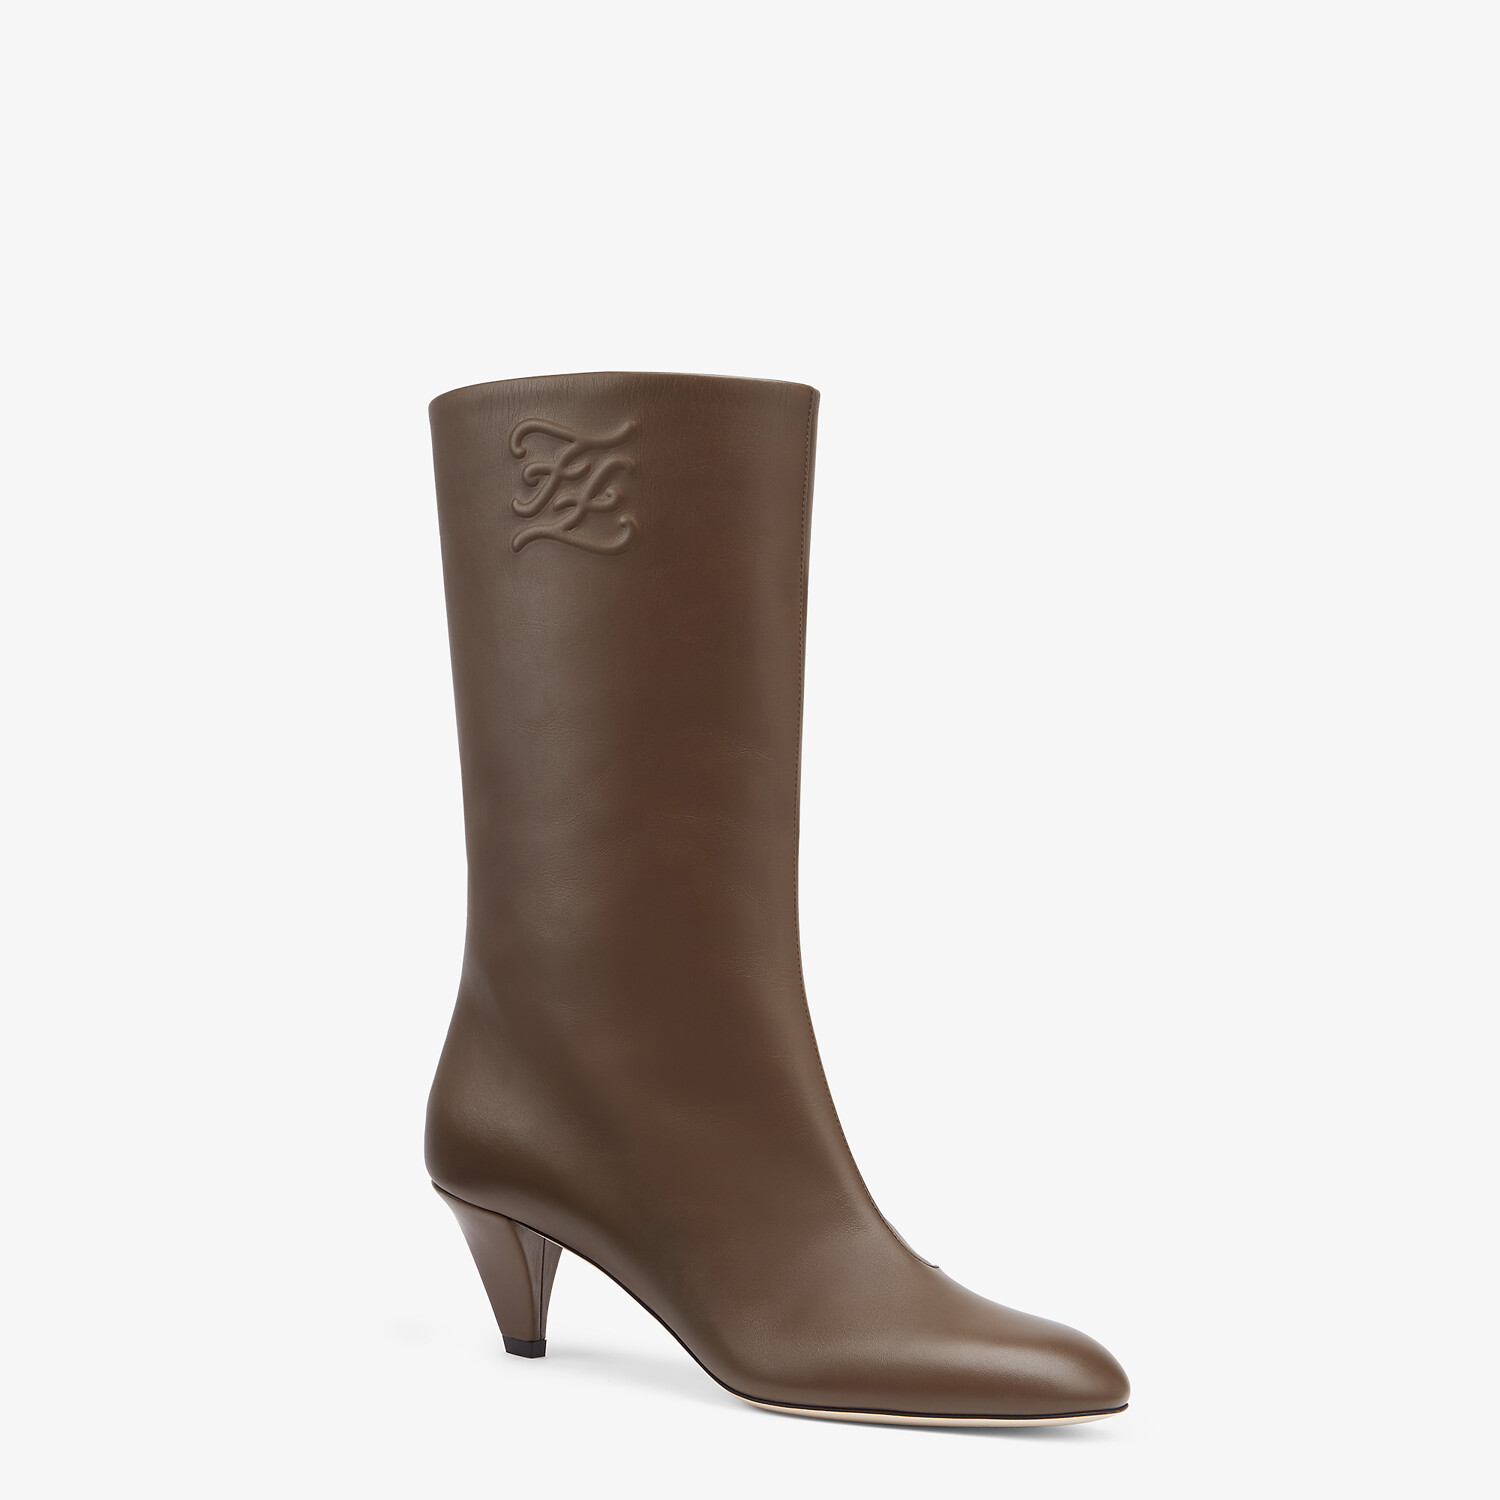 FENDI KARLIGRAPHY - Brown leather boots with medium heel - view 2 detail